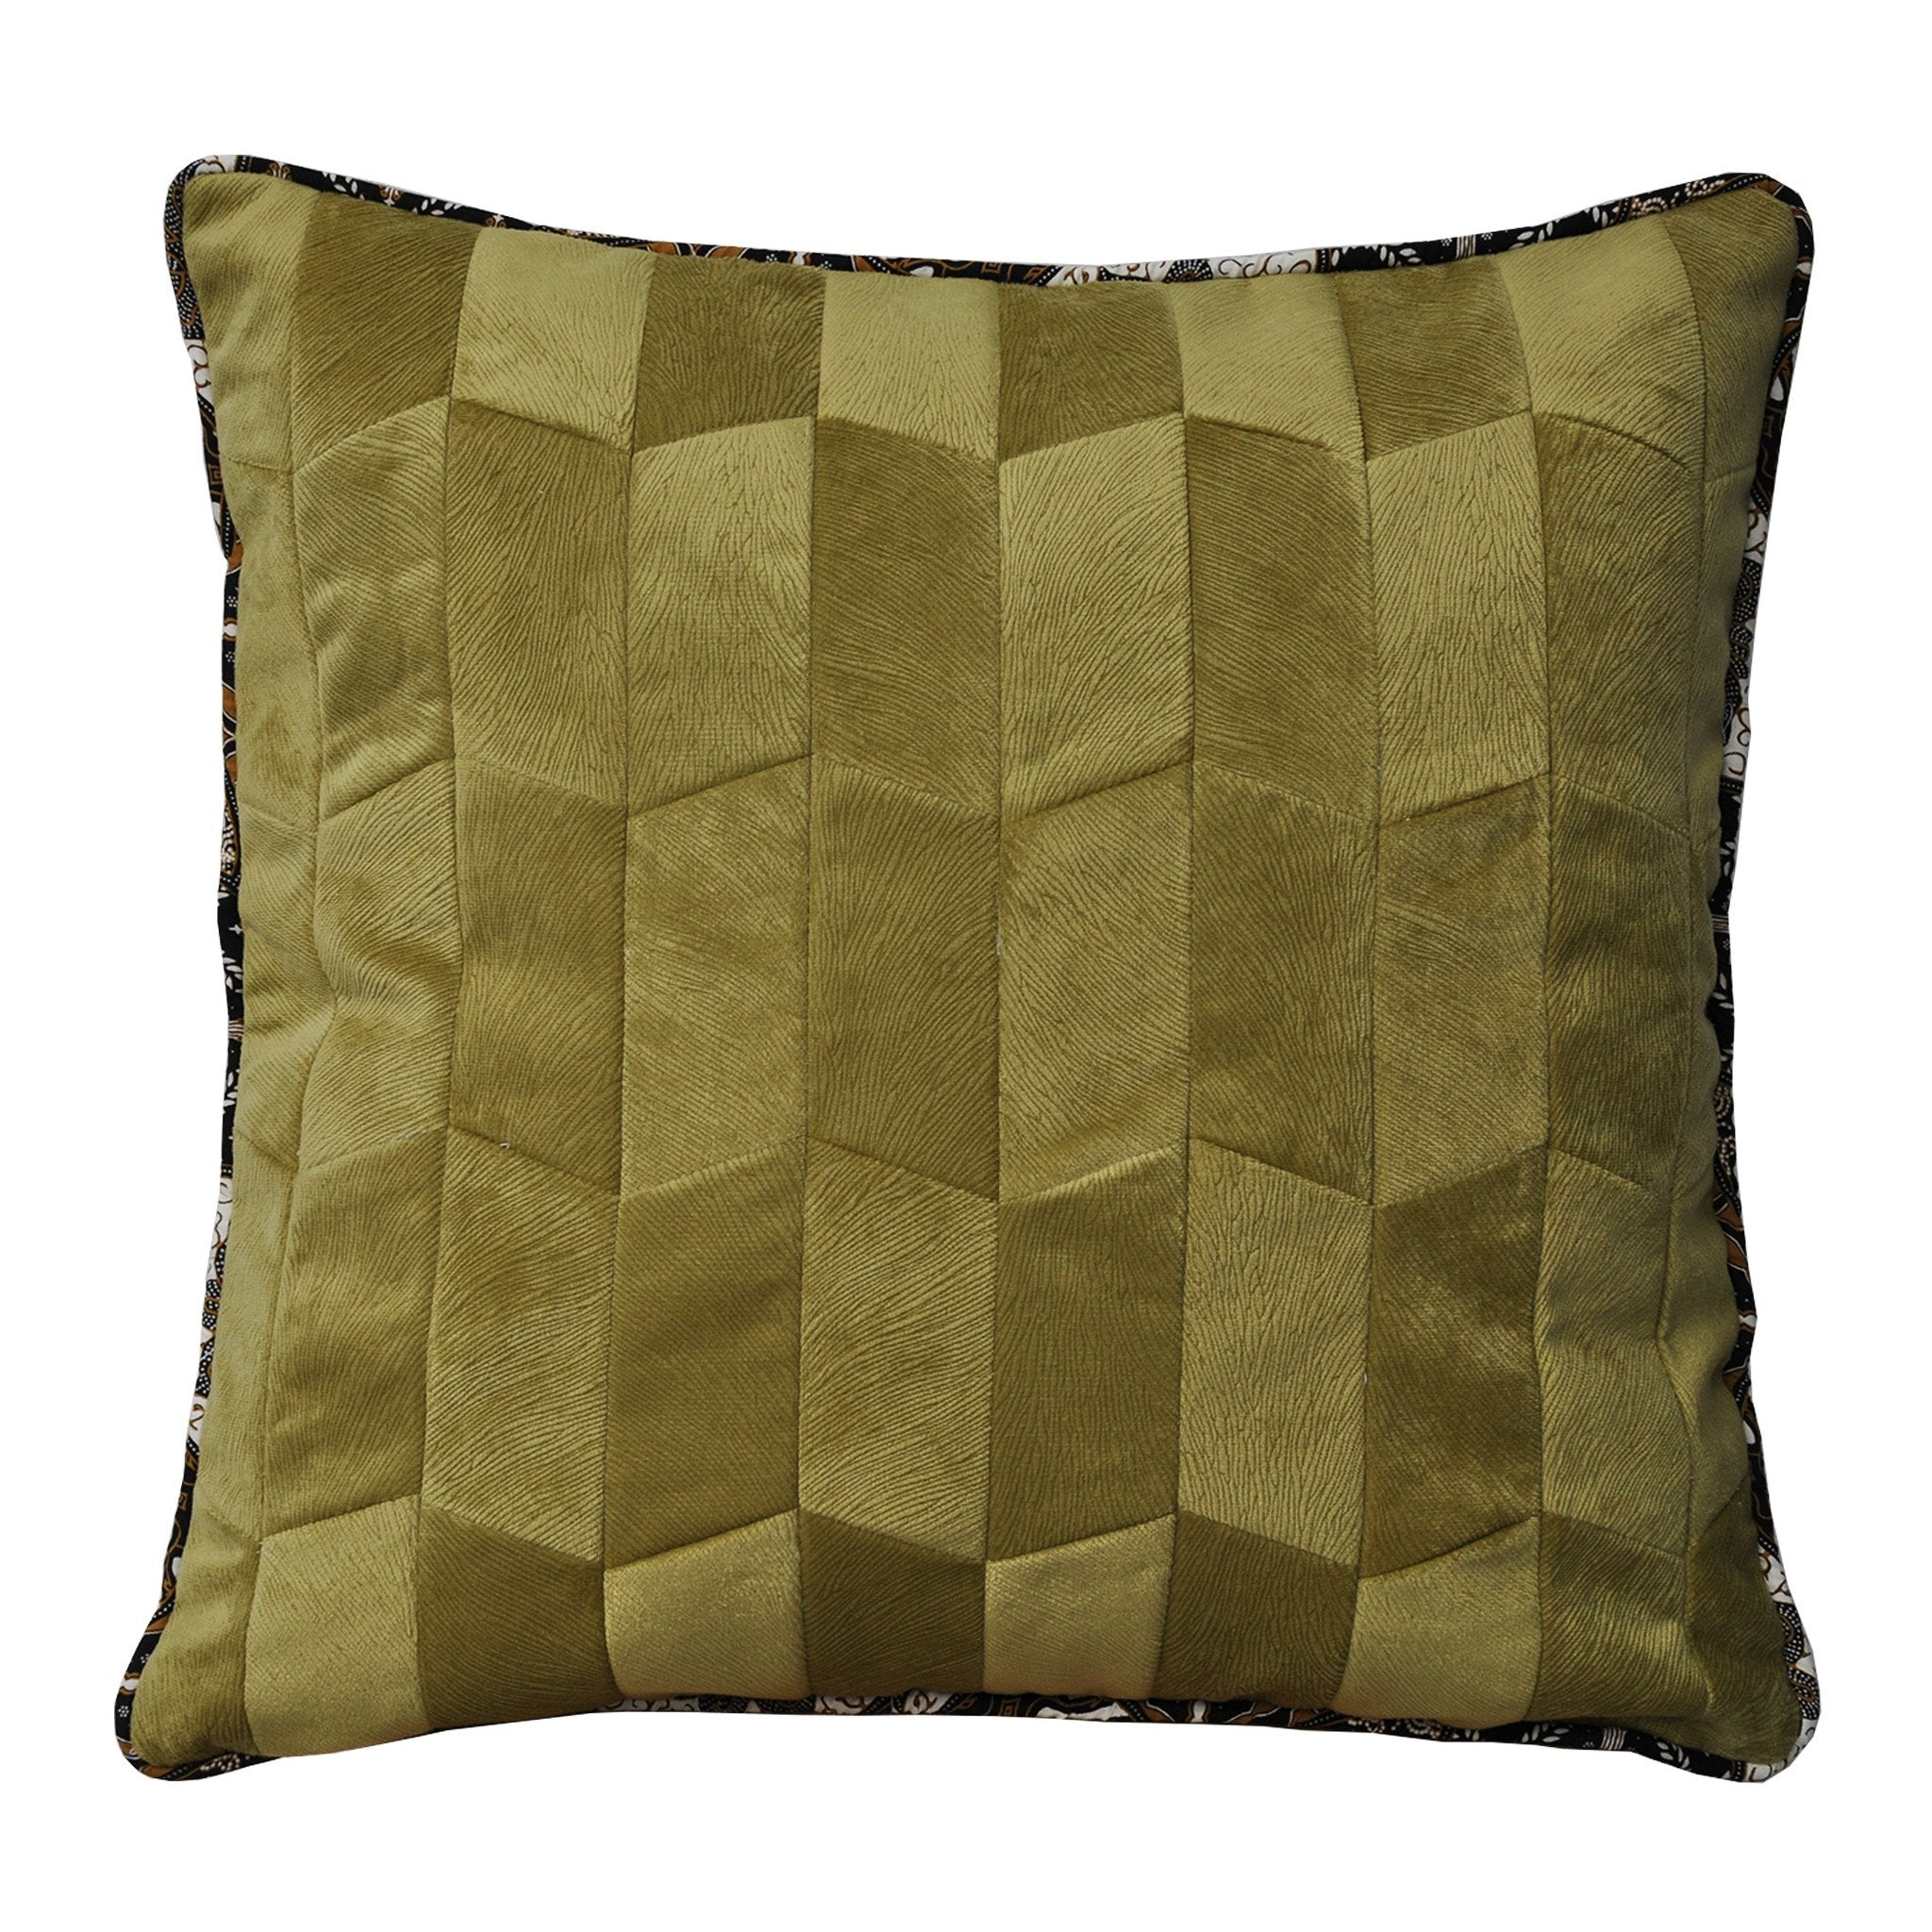 Summer Baba Olive Patchwork Cushion - Departures & Arrivals  - 1